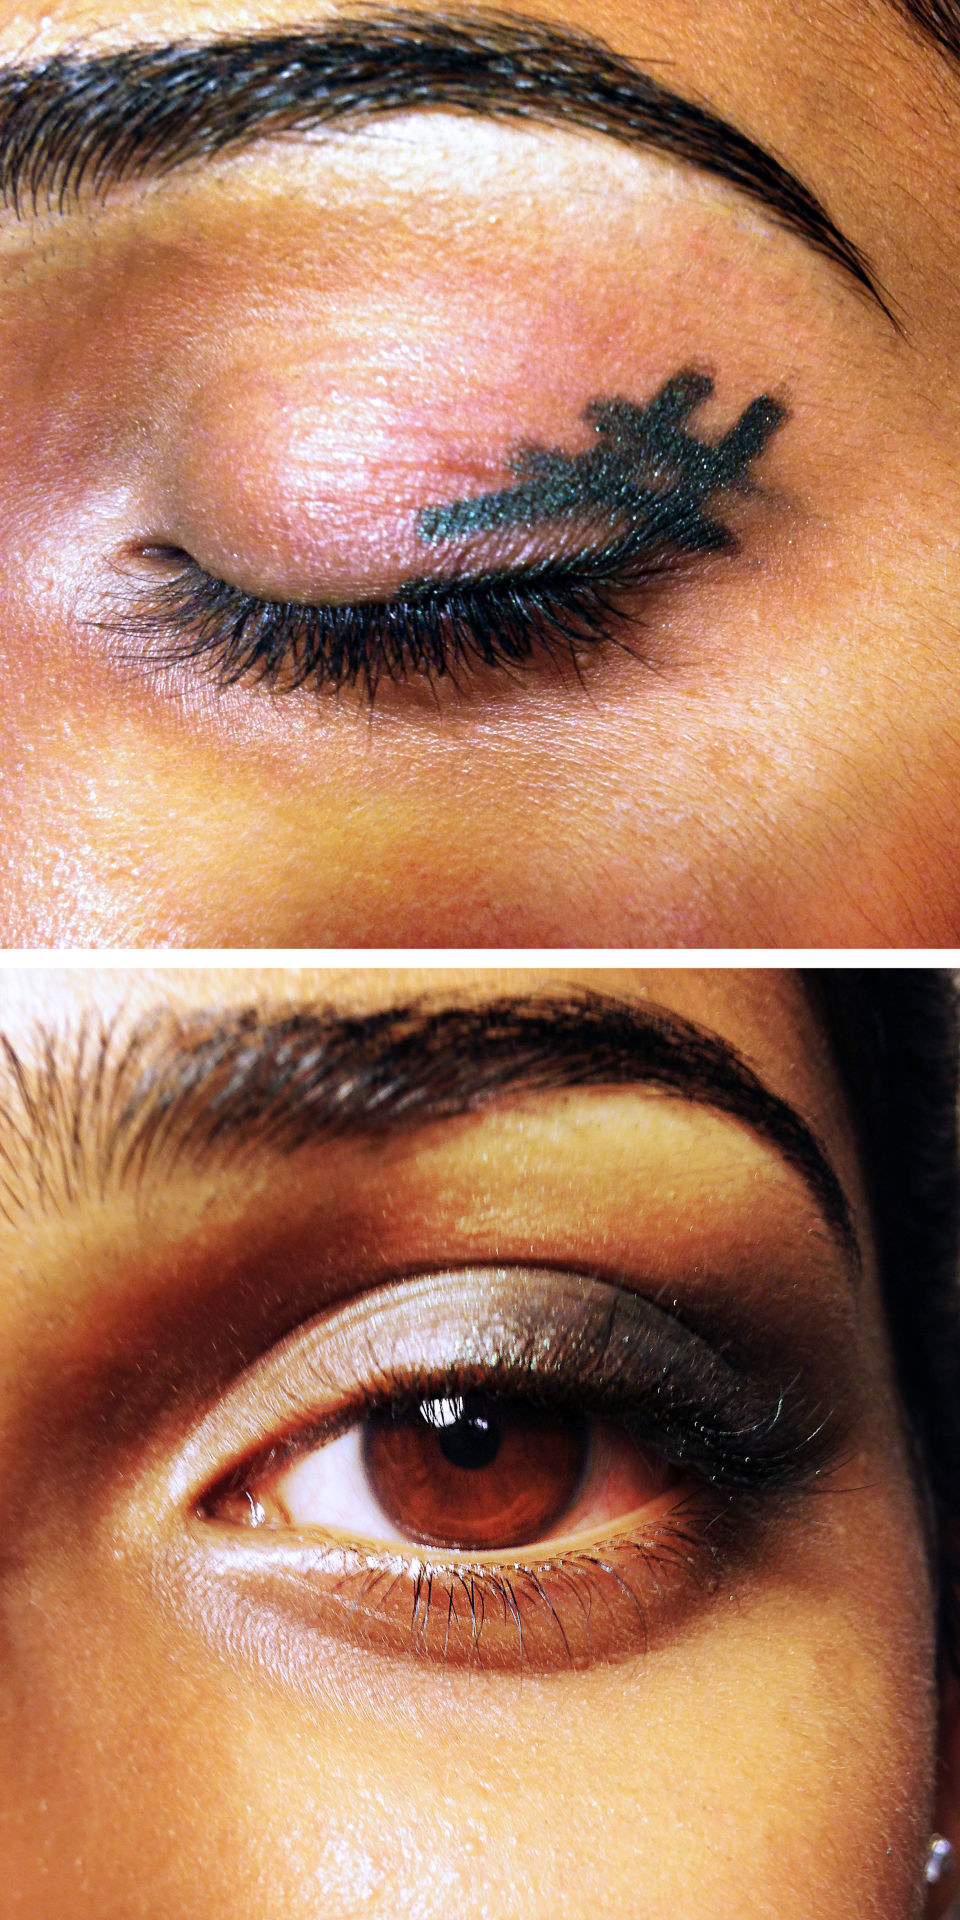 27 Tips And Tricks For Getting Your Makeup To Look The Best It Ever Has